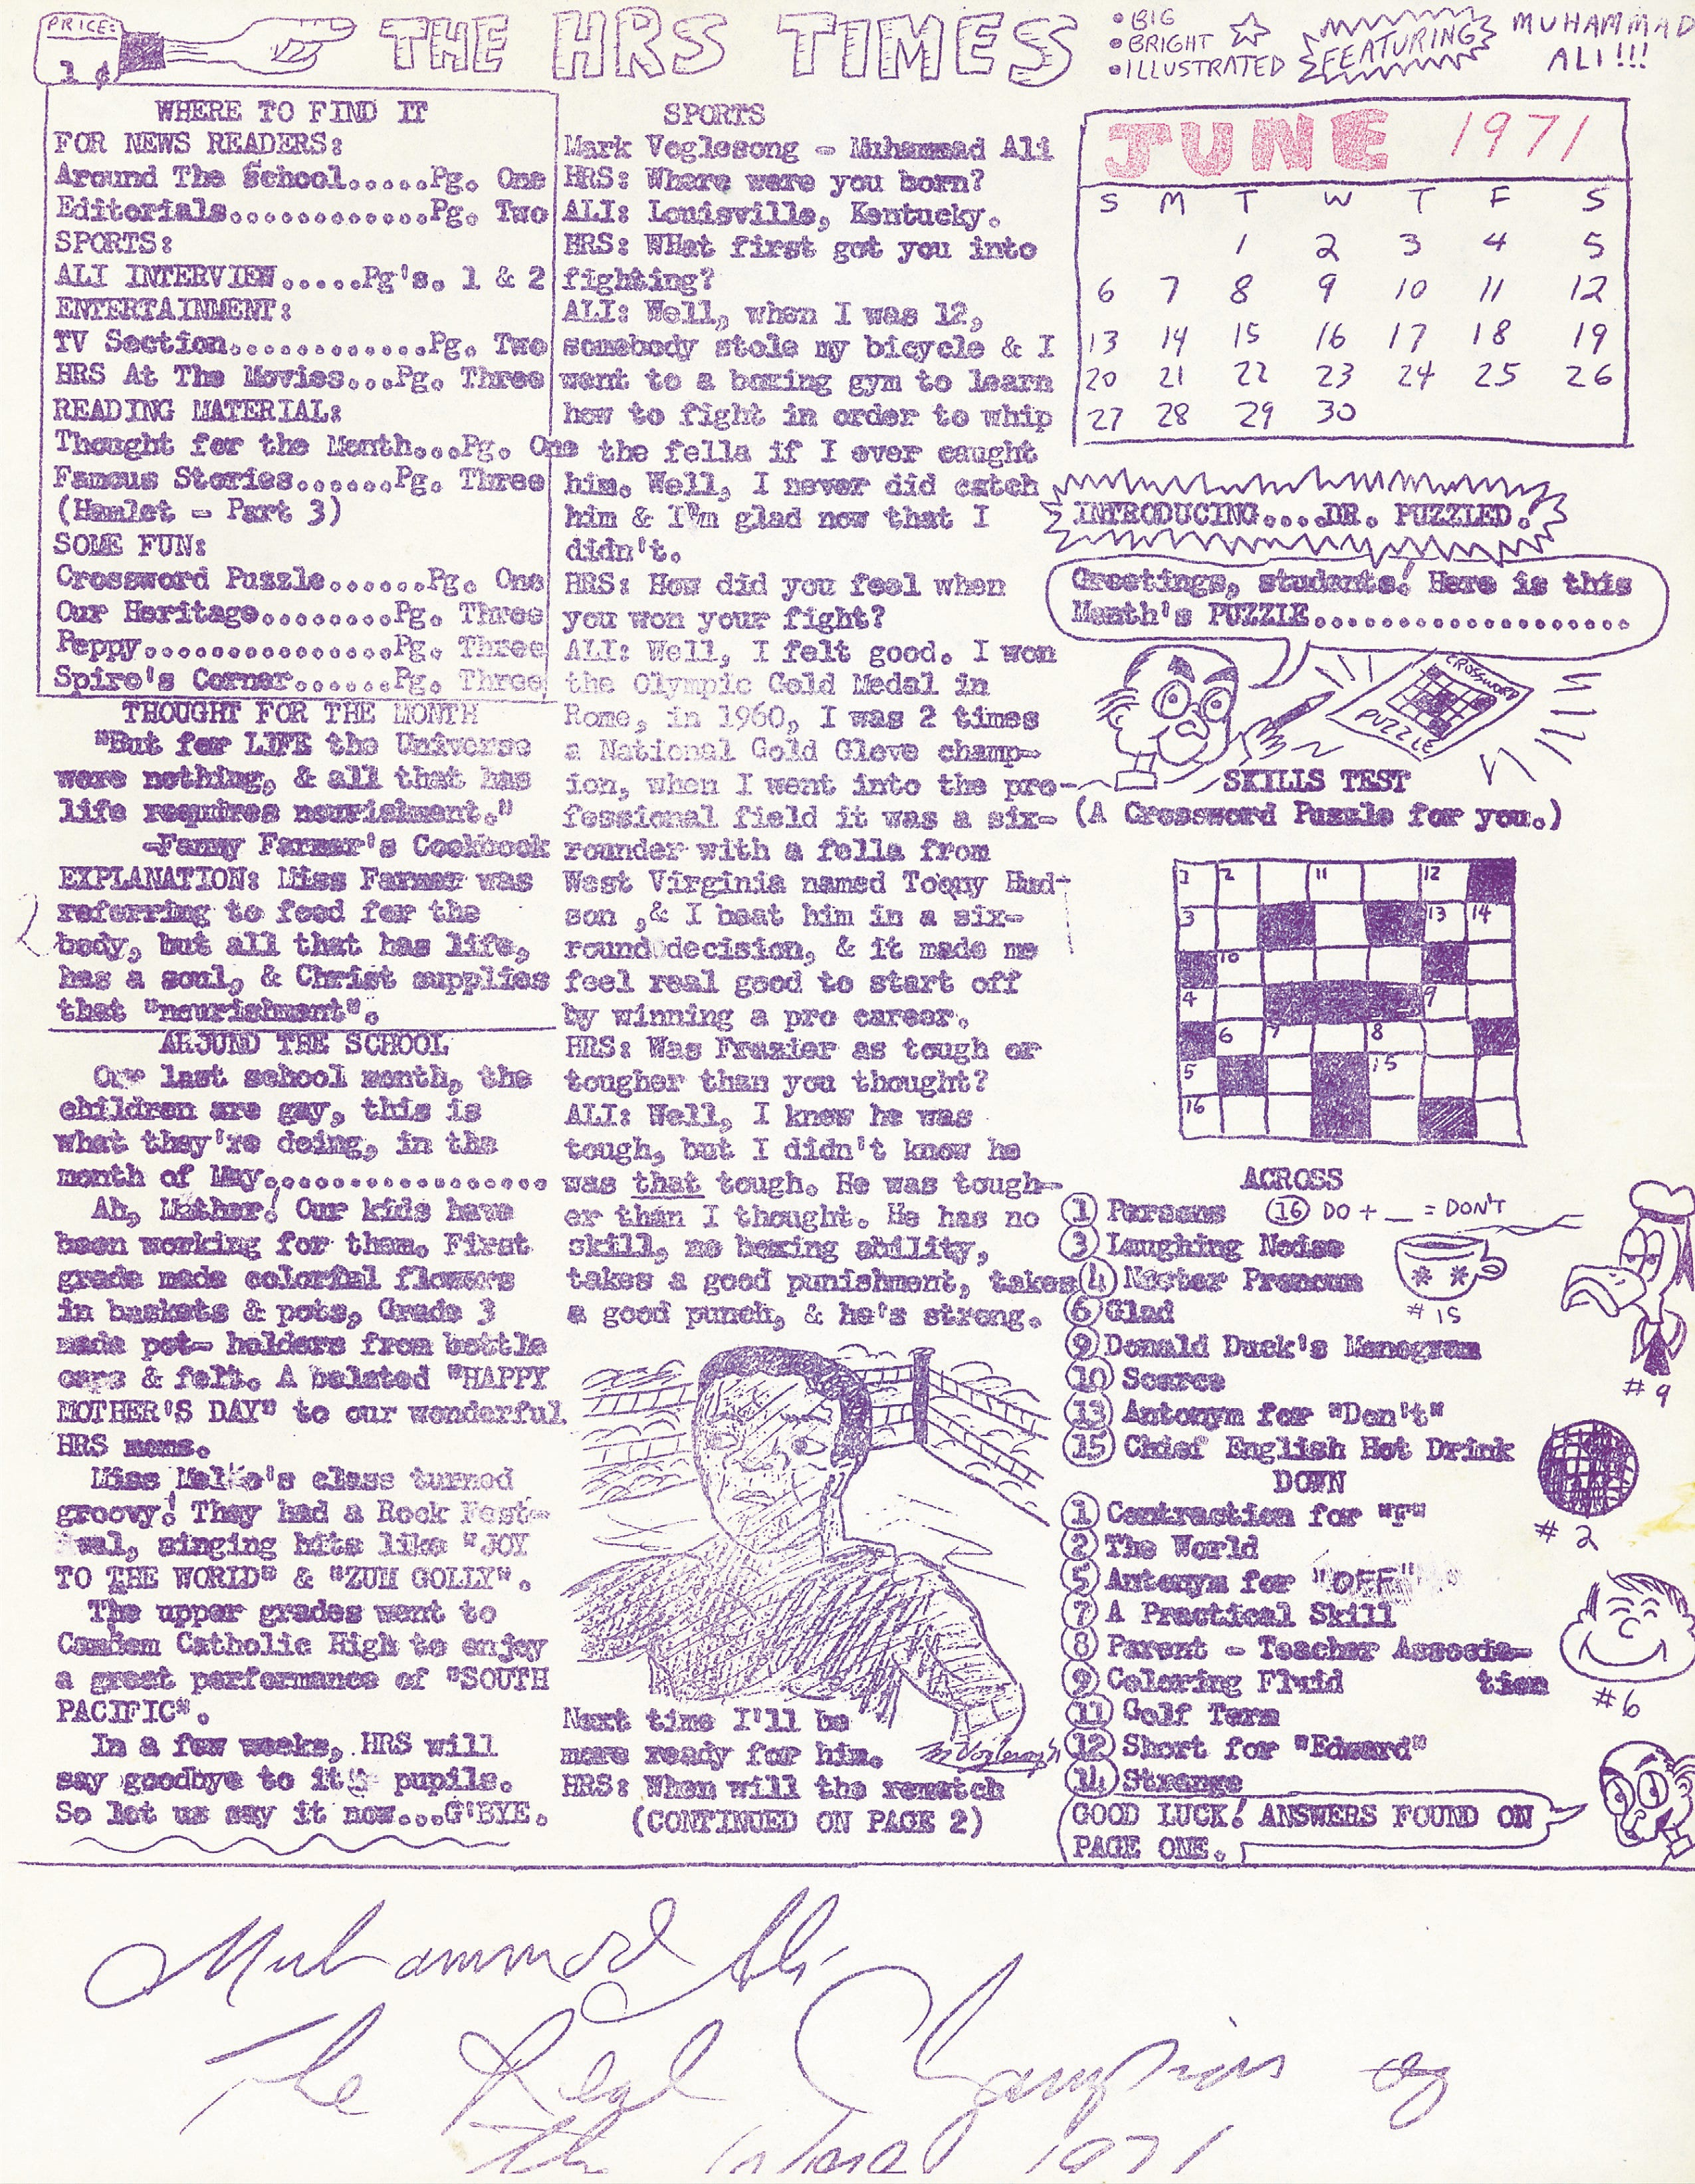 A copy of the interview Mark Voger did with the boxing champion Muhammad Ali for the Holy Rosary School Times in 1971. Voger interviewed Ali at his Cherry Hill home.